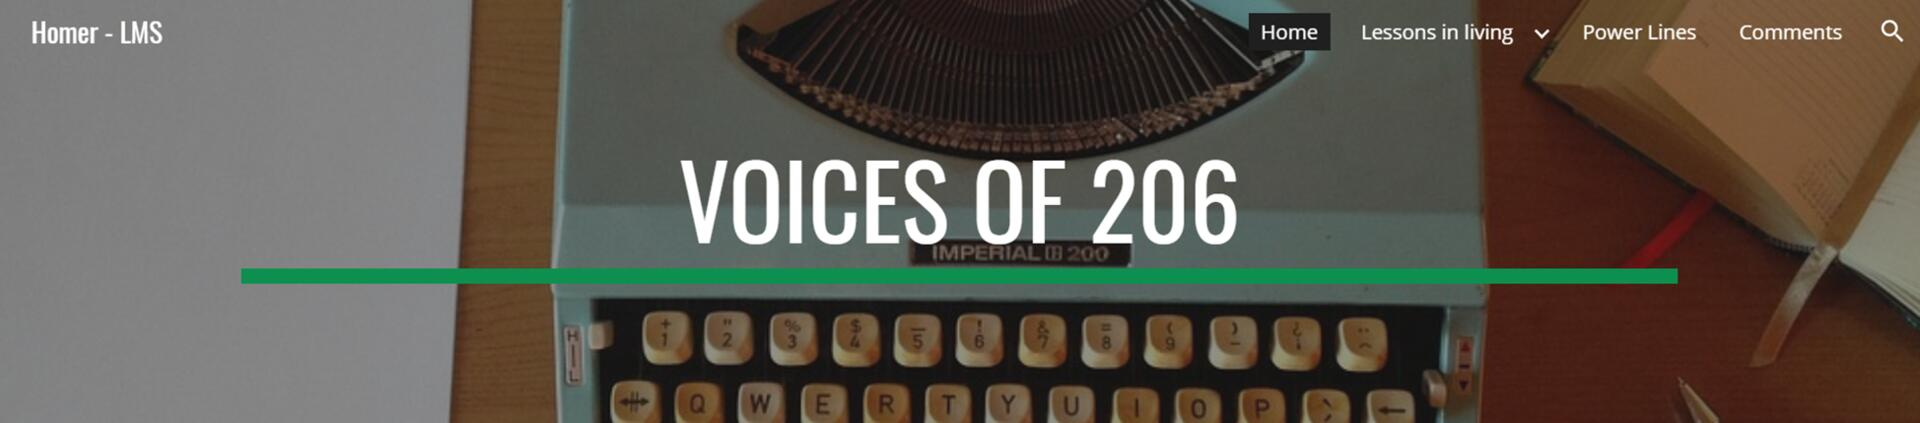 Voices of 206 website banner